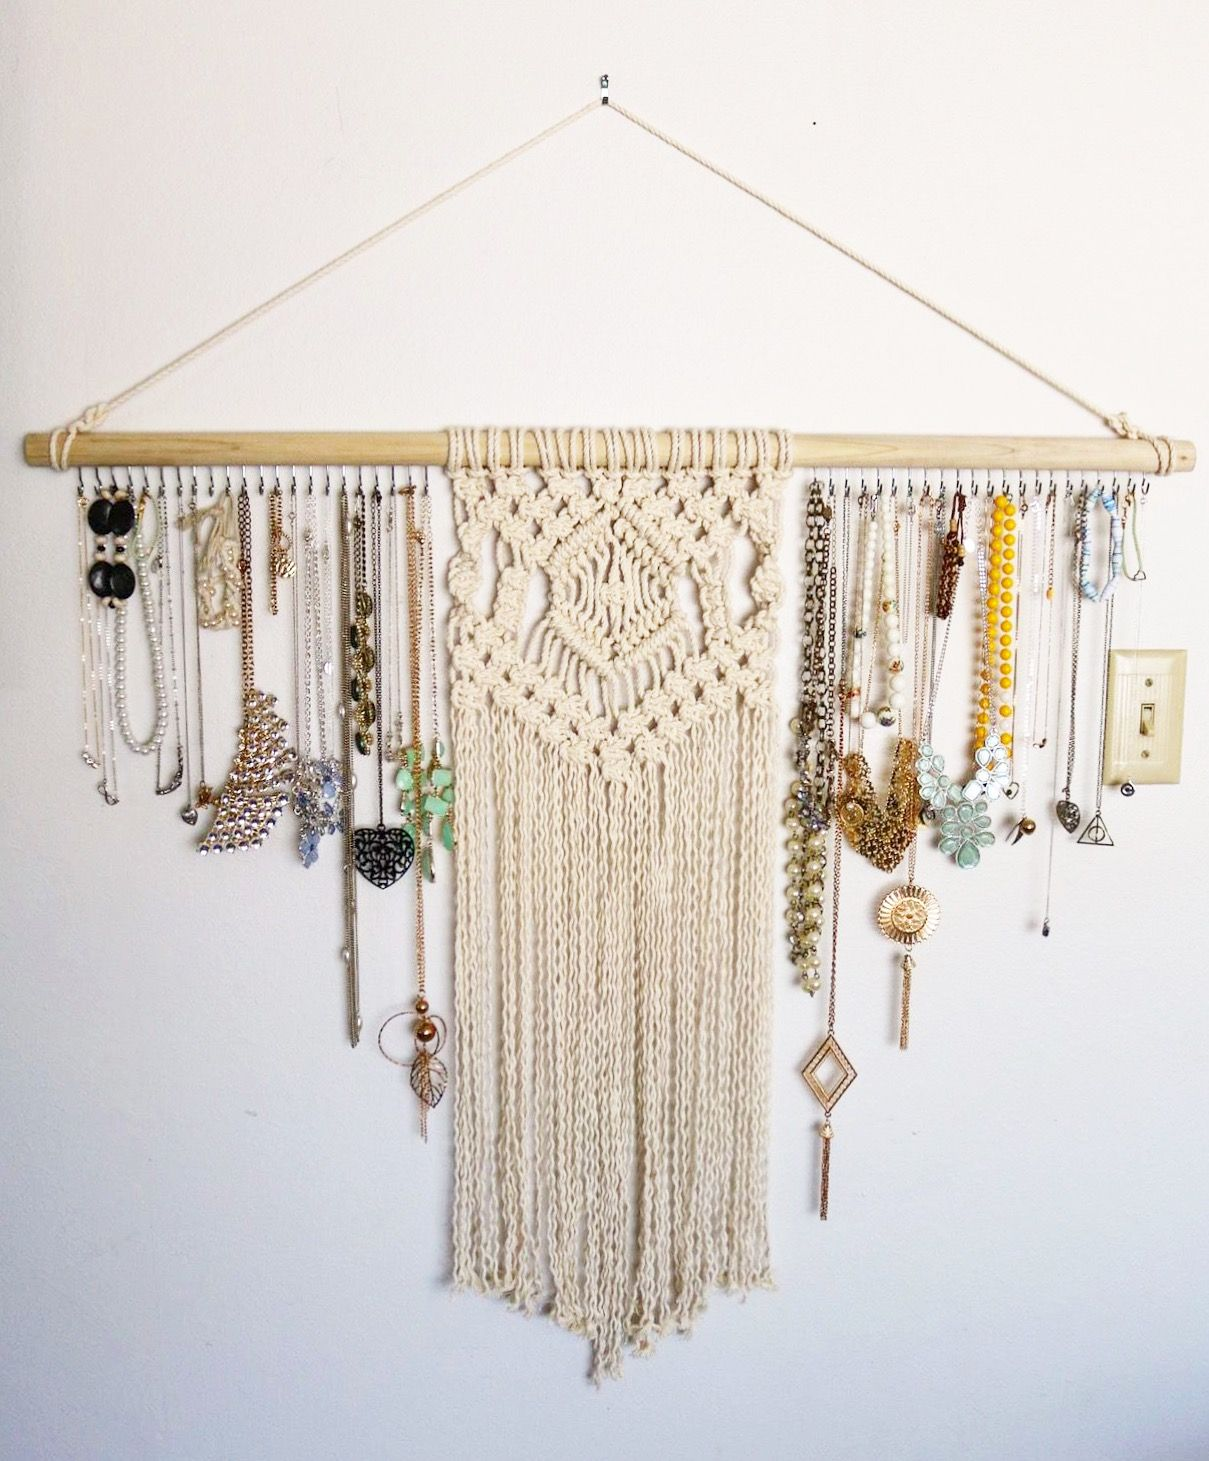 The Most Gorgeous and Versatile Wall Hanging Ever